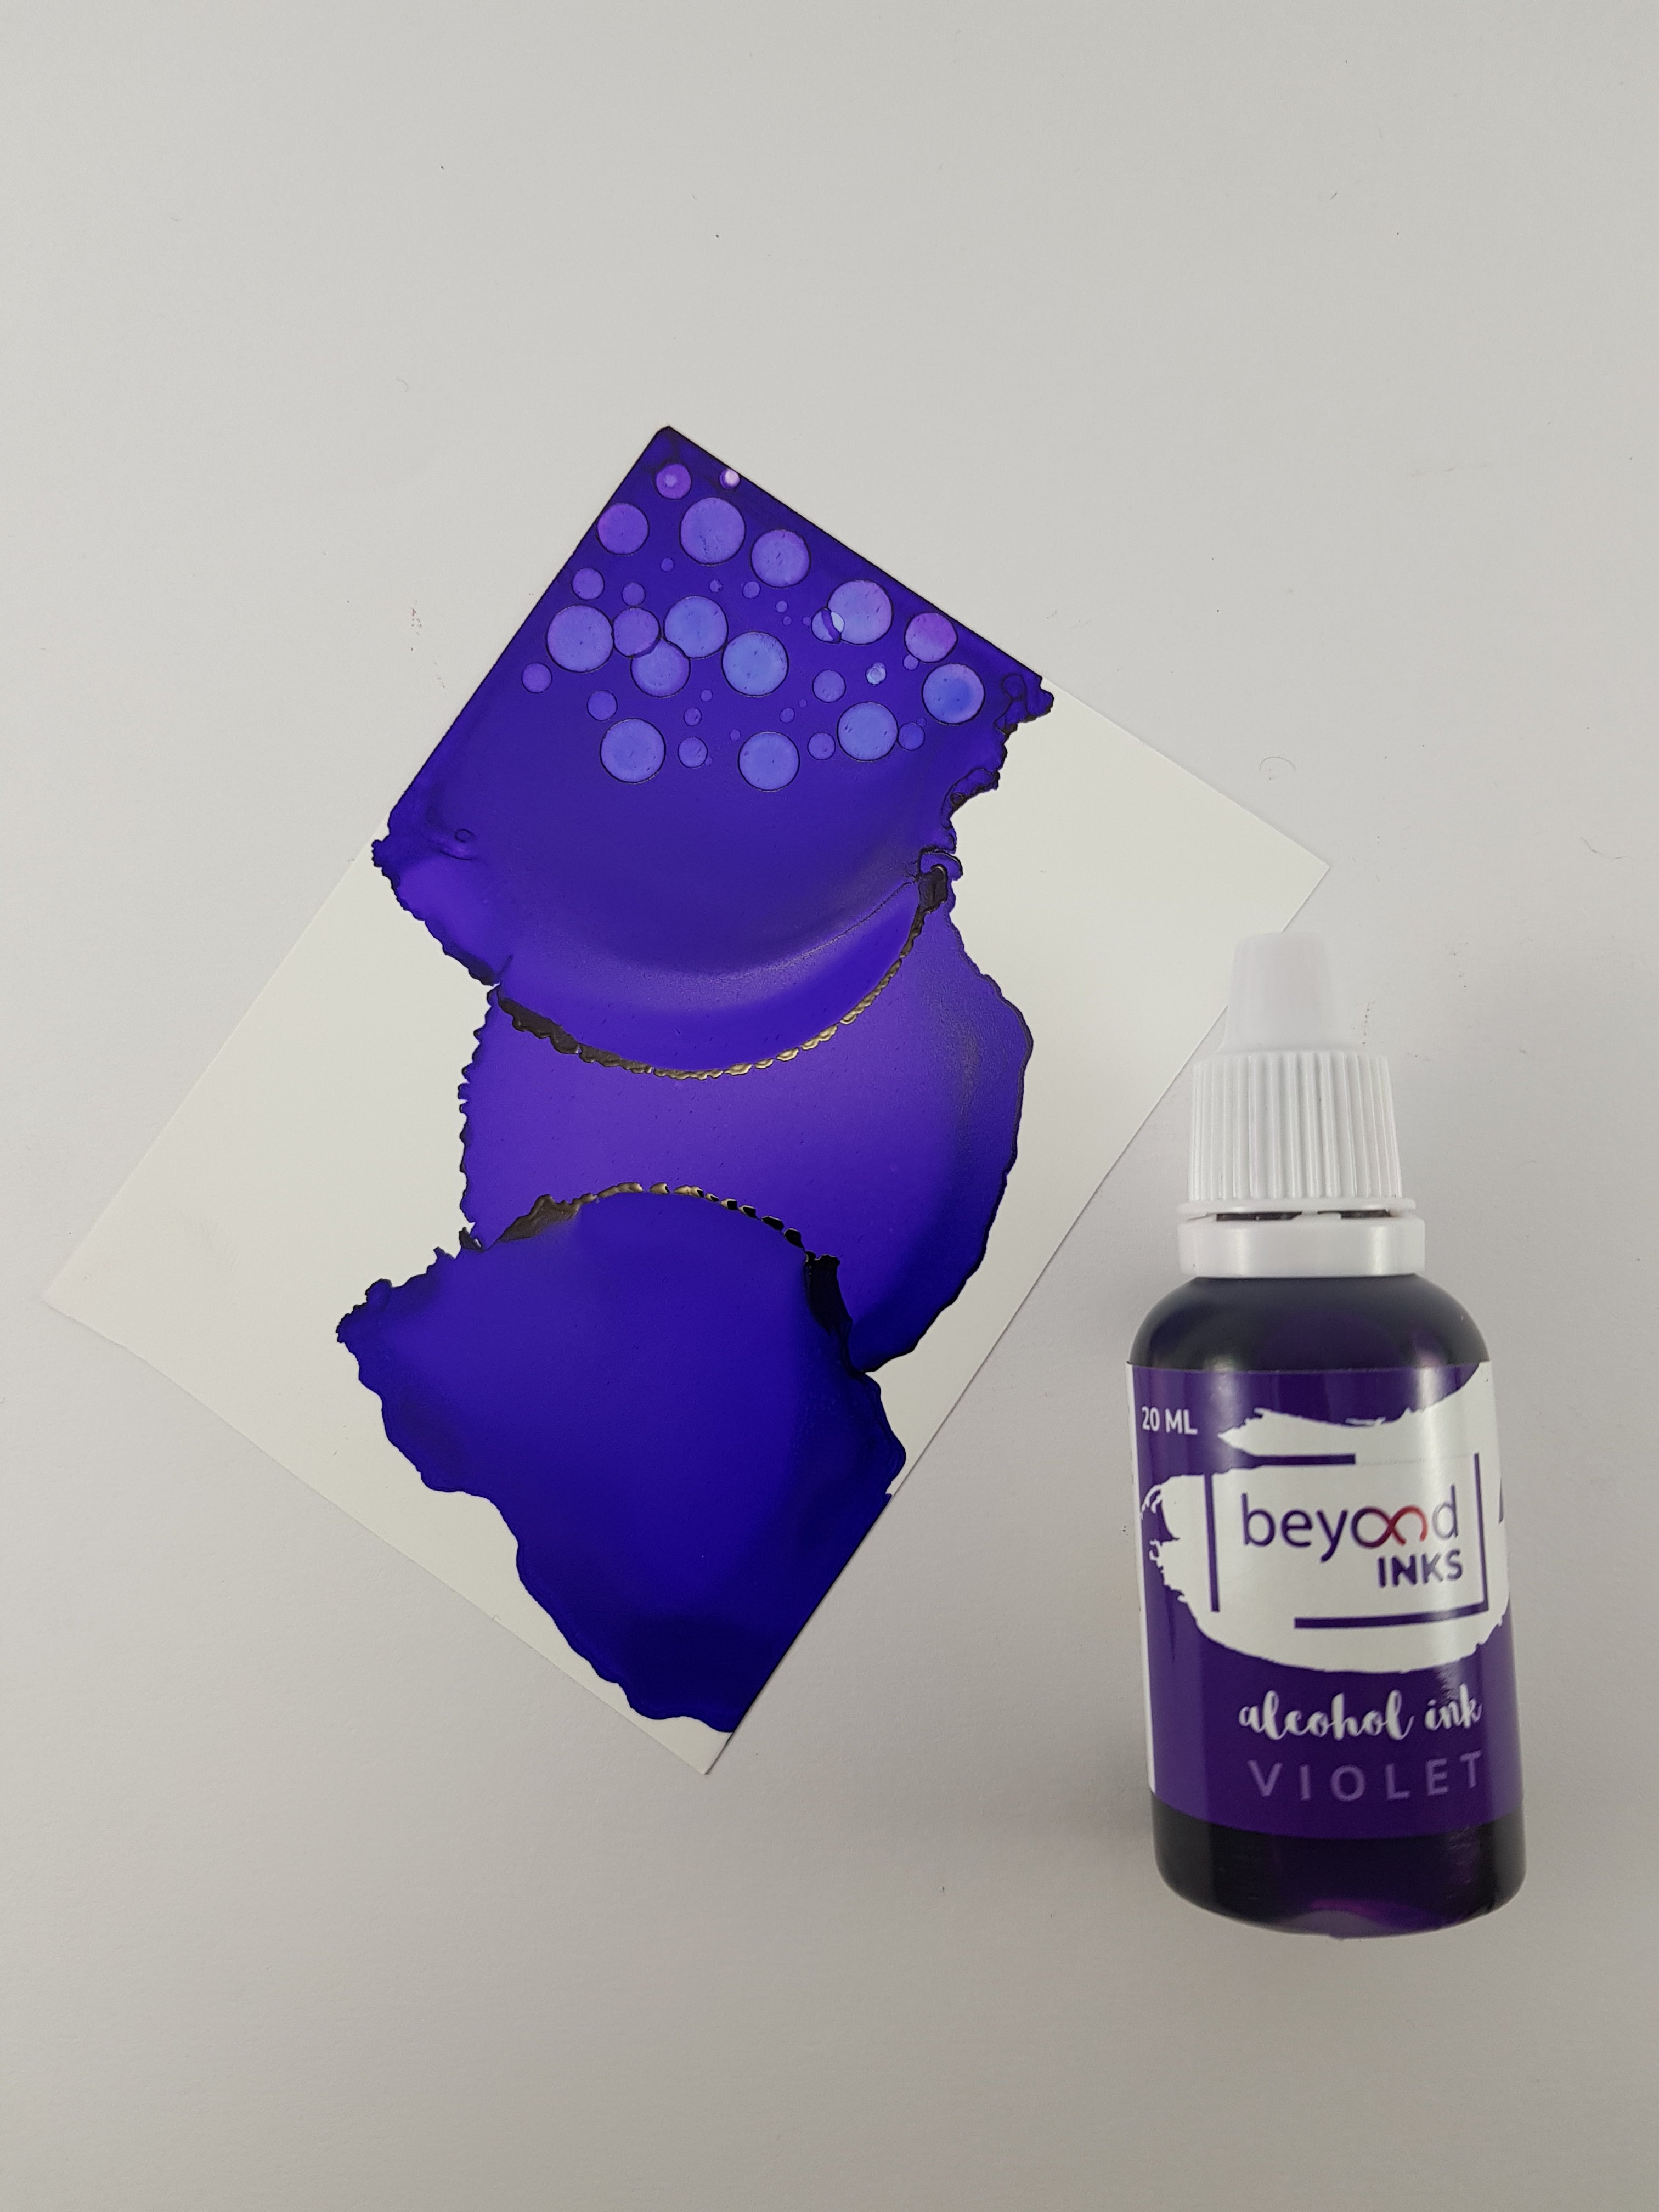 Alcohol Ink Pack 2 Violet by Beyond Inks